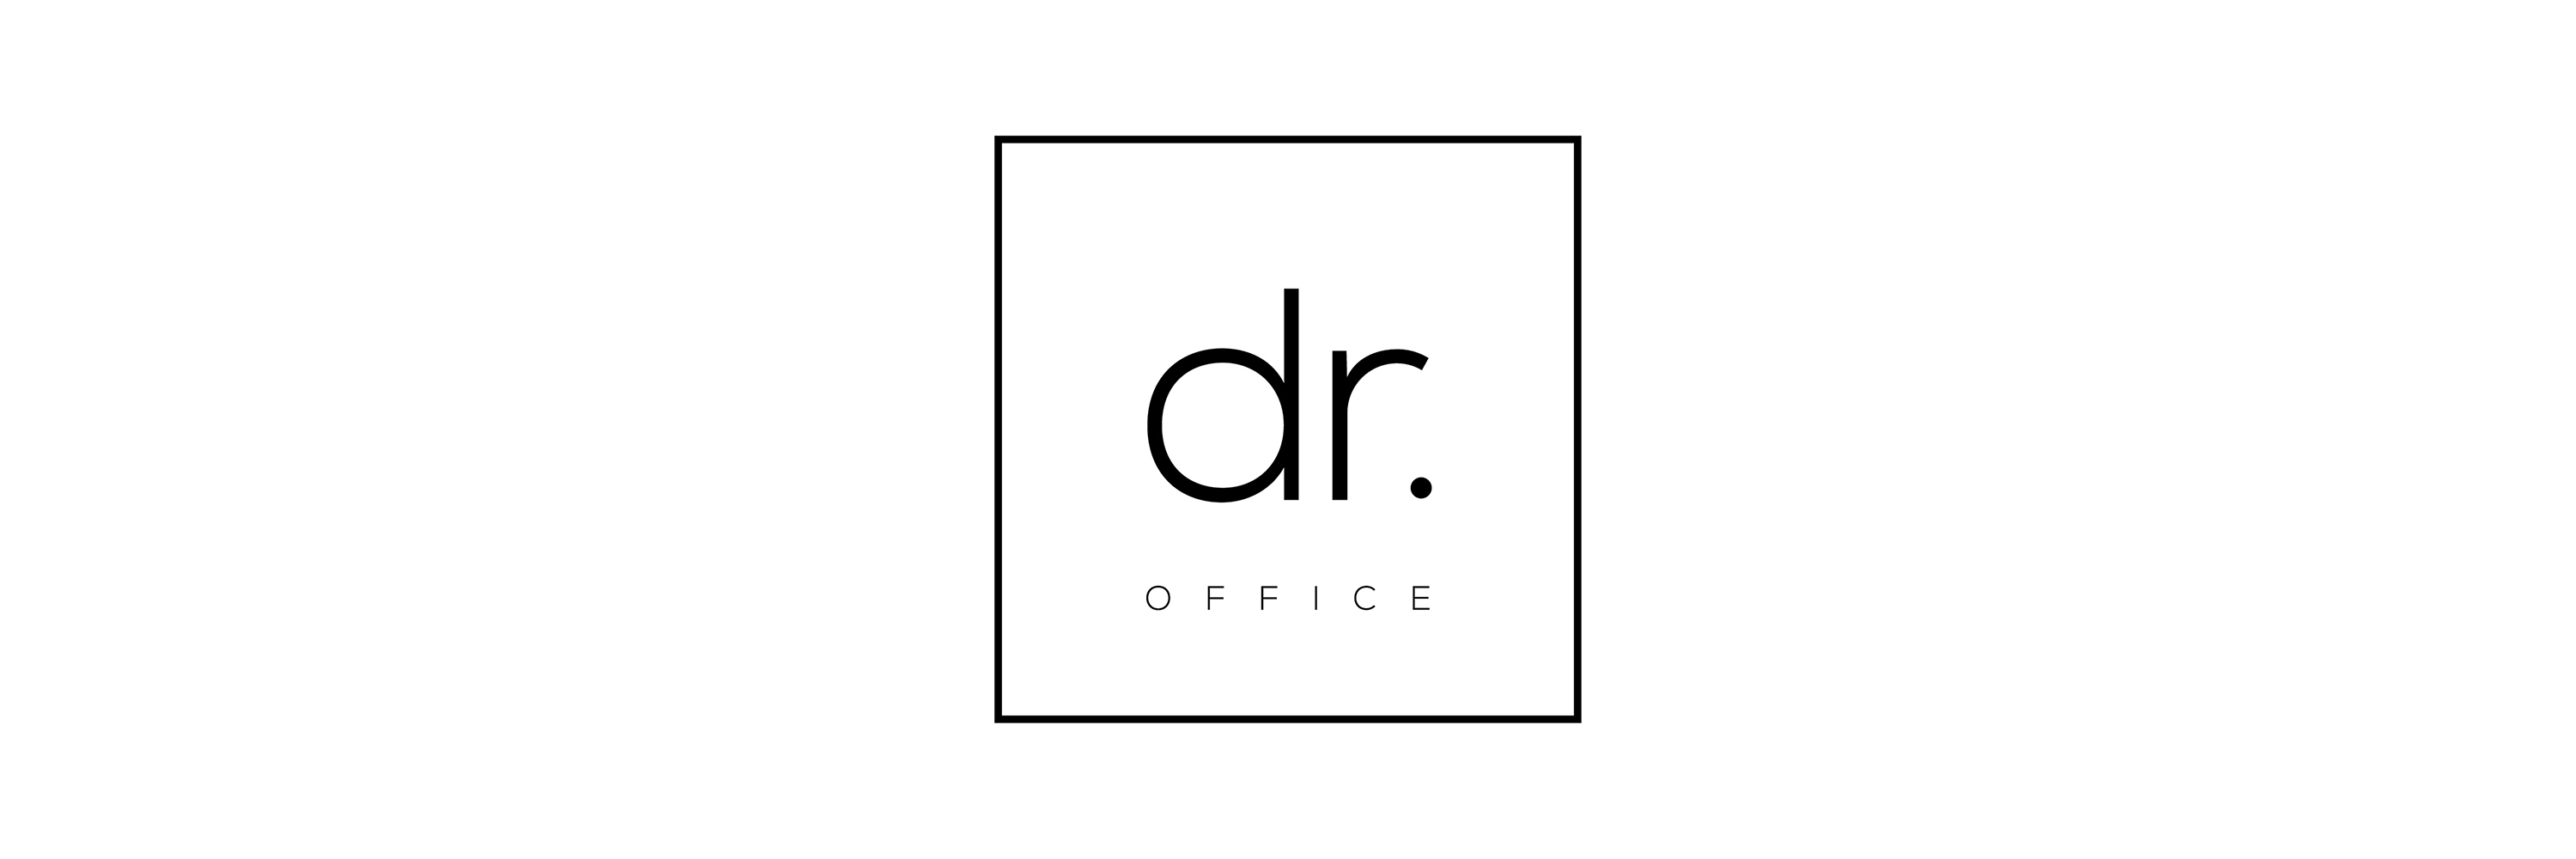 https://reklamosideja.eu/wp-content/uploads/2020/12/dr-office-logo-v2.jpg